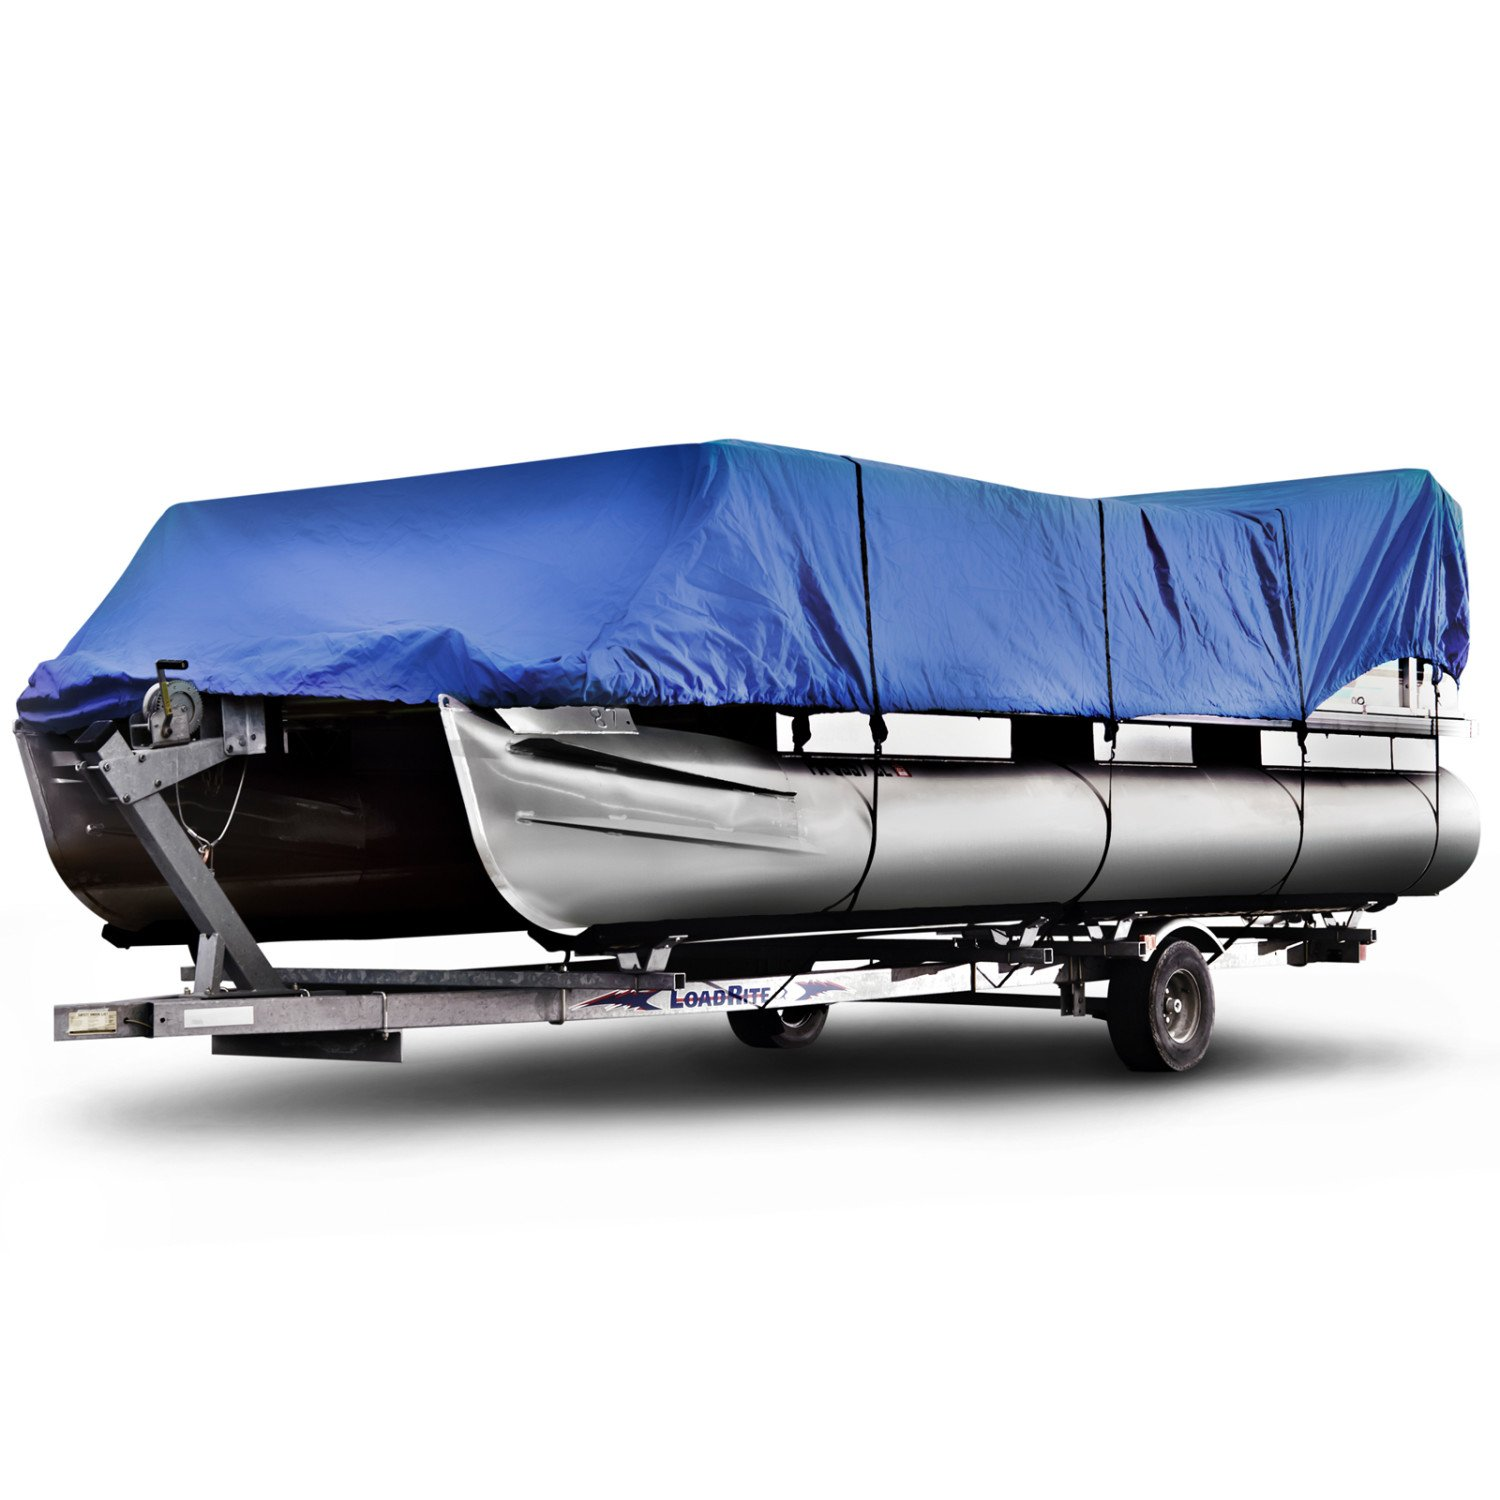 Budge 600 Denier Pontoon Covers Fits Pontoon Boats 20' to 24' Long, Blue by Budge